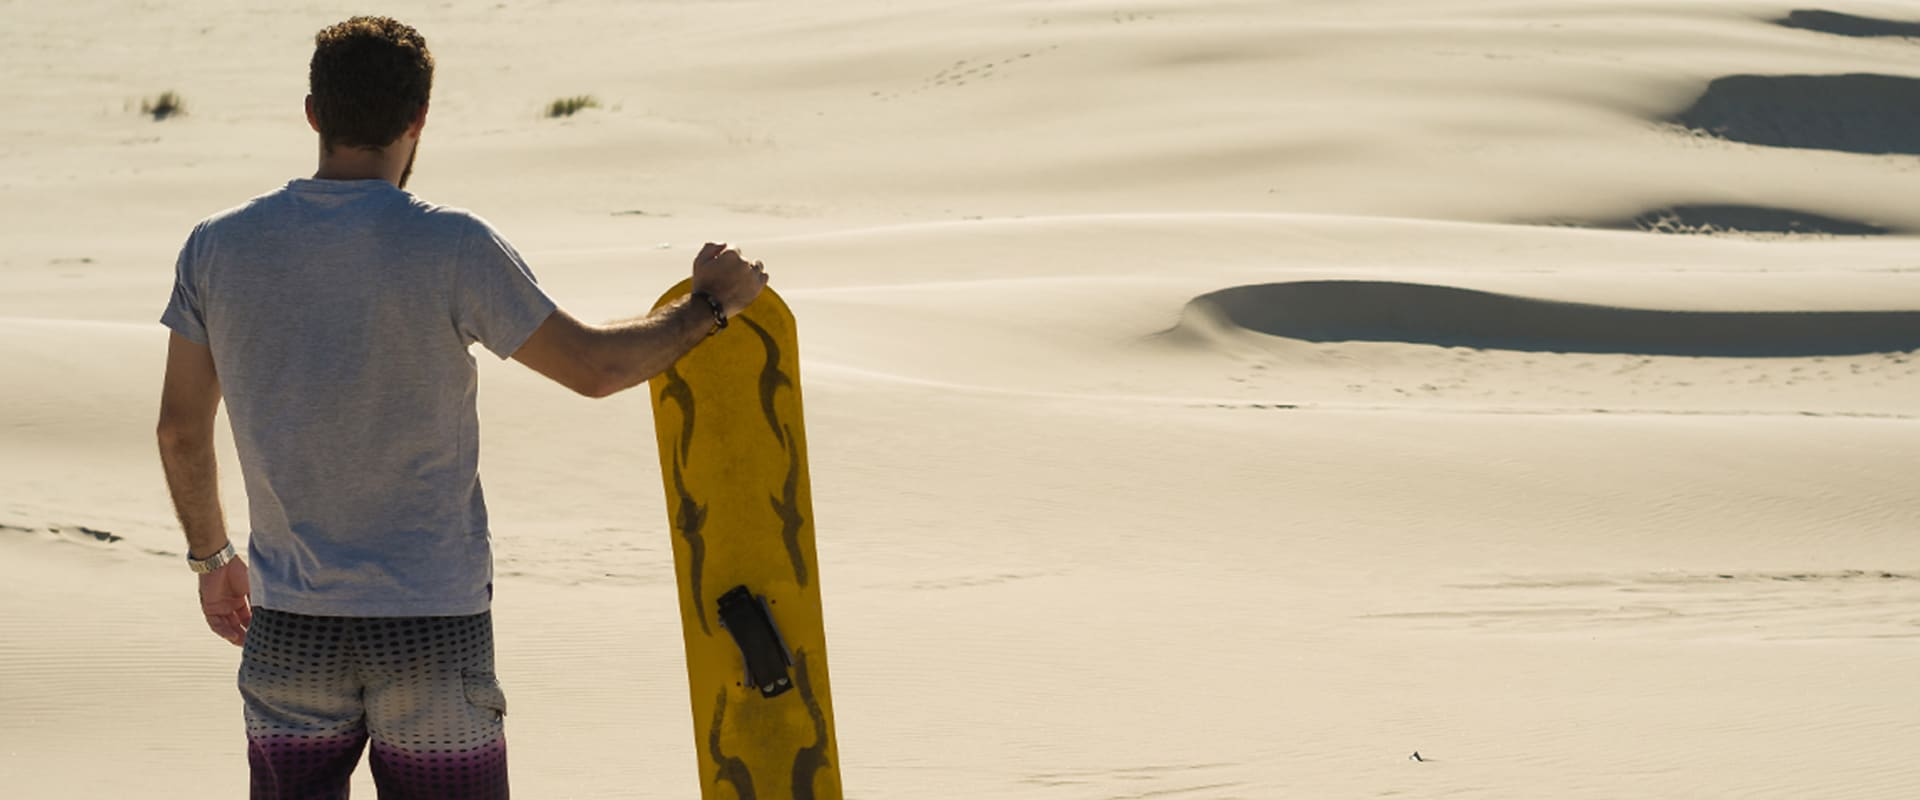 Sand-boarding down the dunes